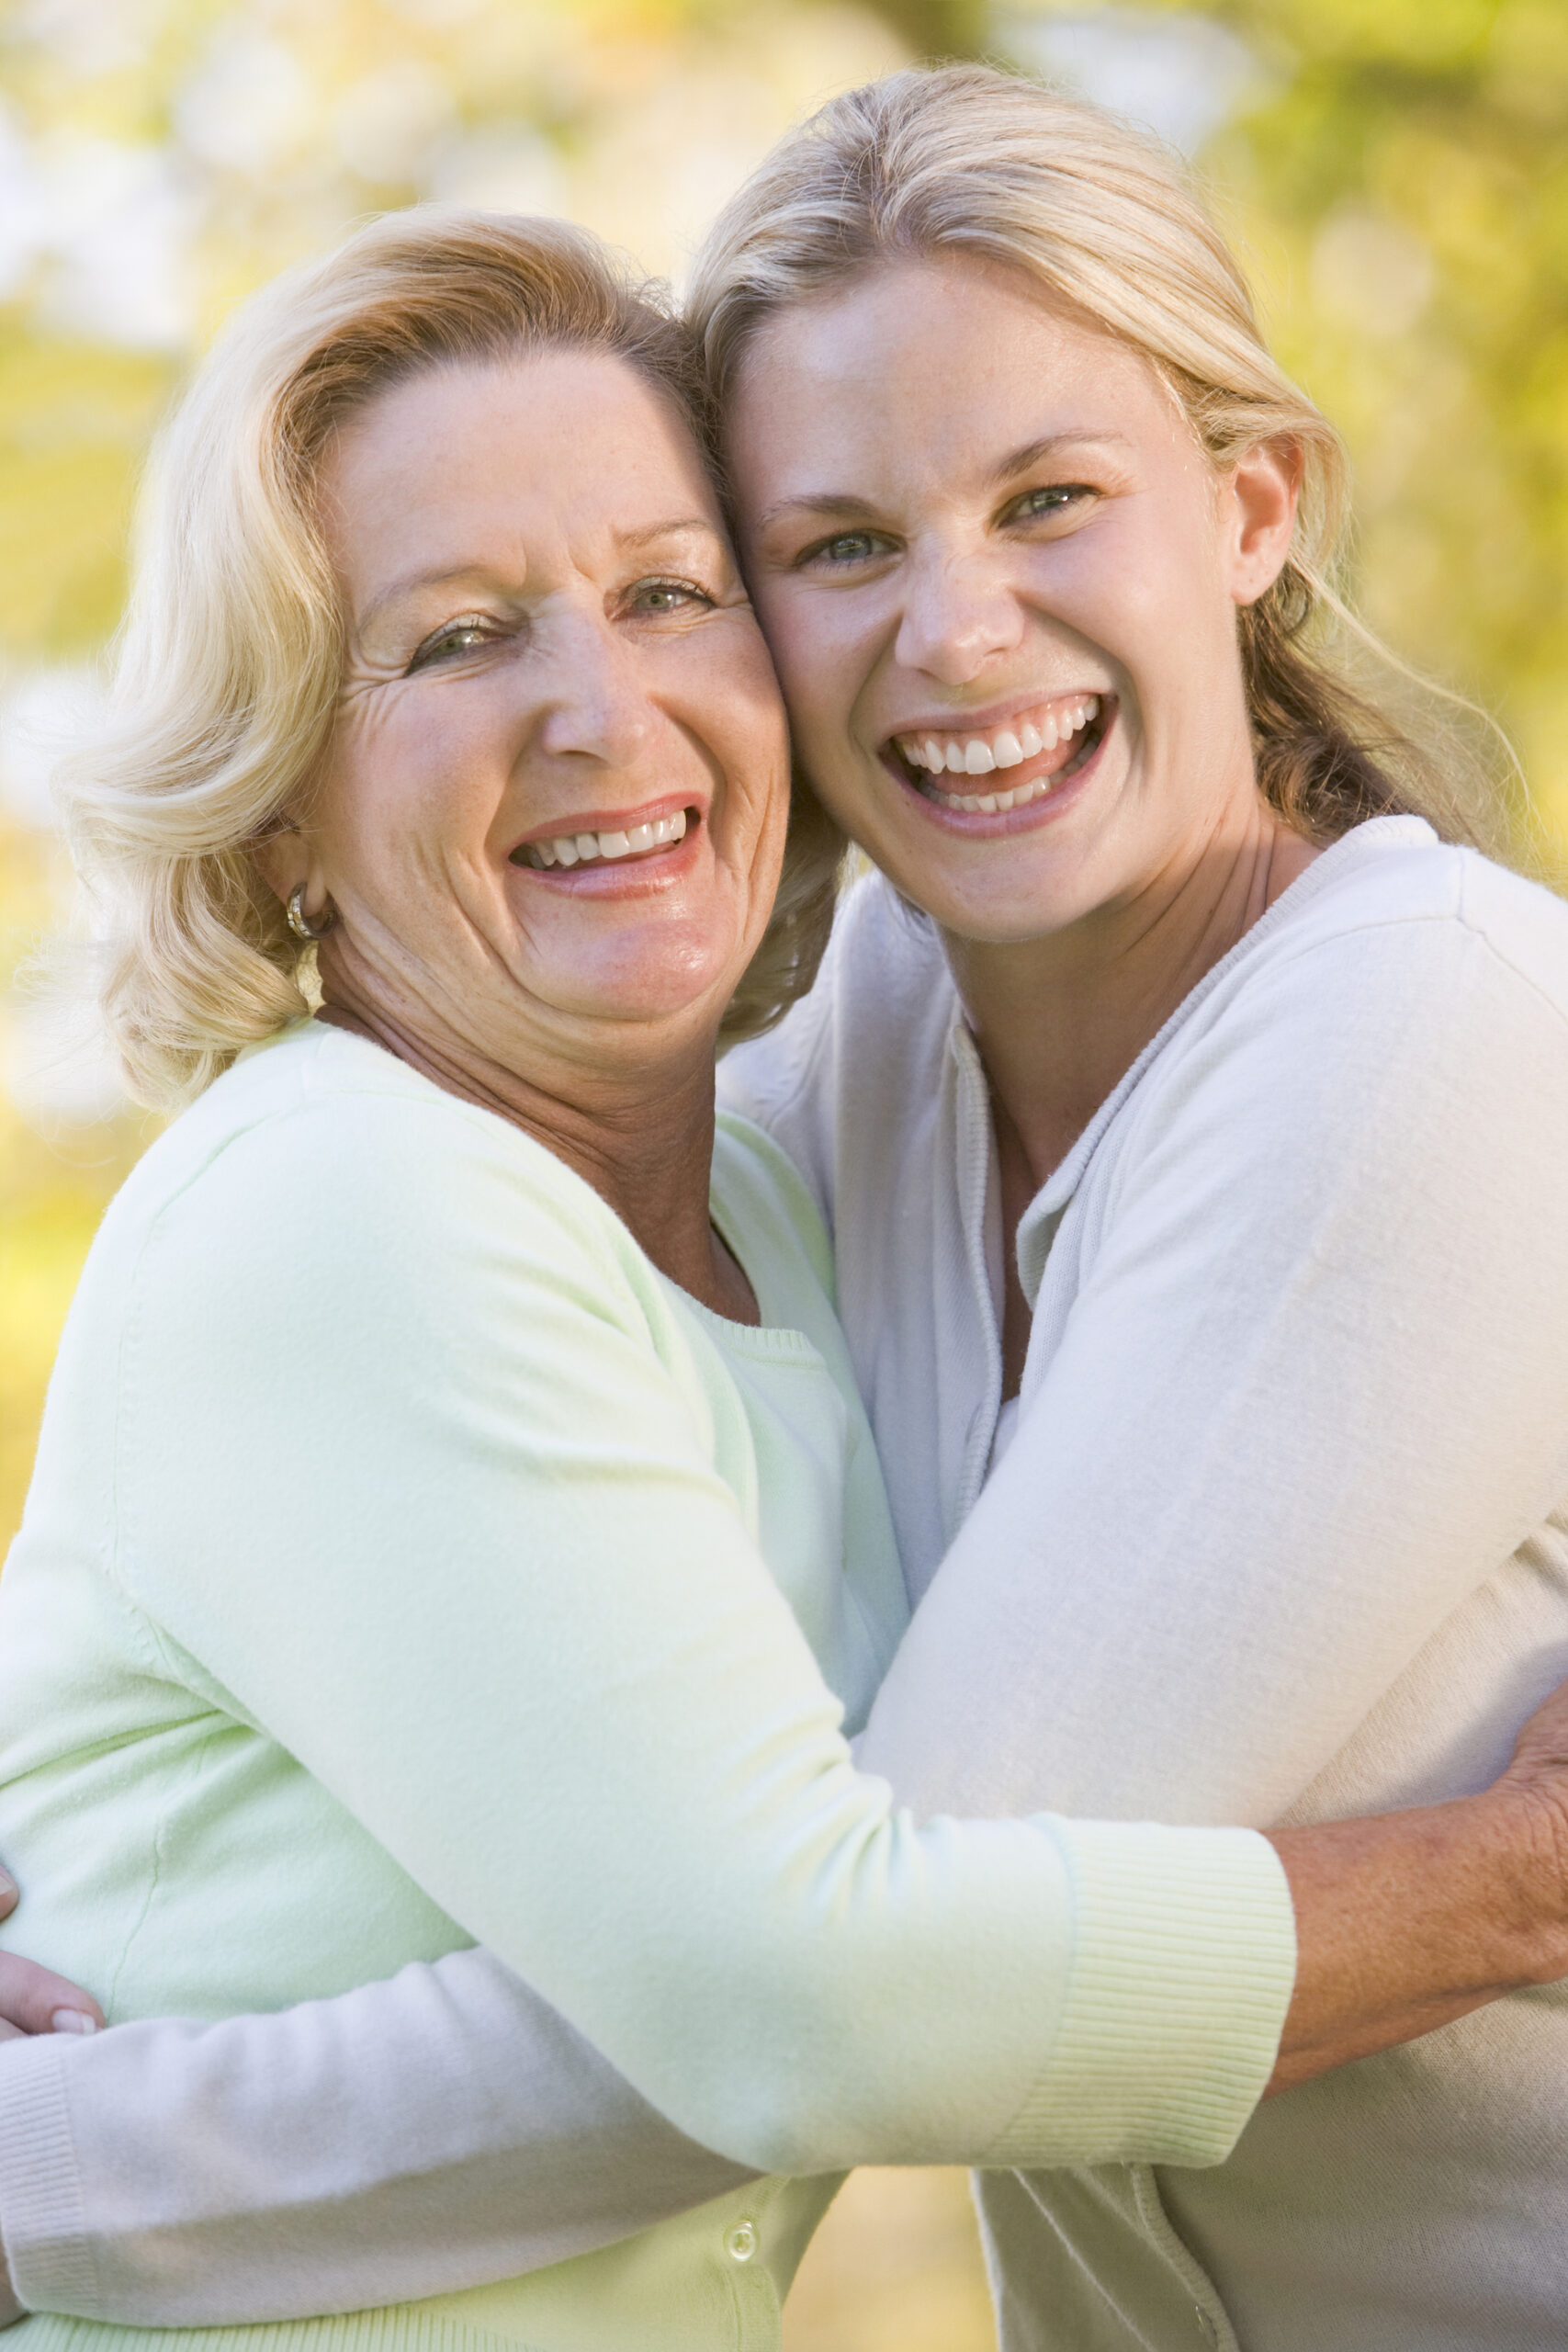 Heal Your Mother Daughter Relationship Issues